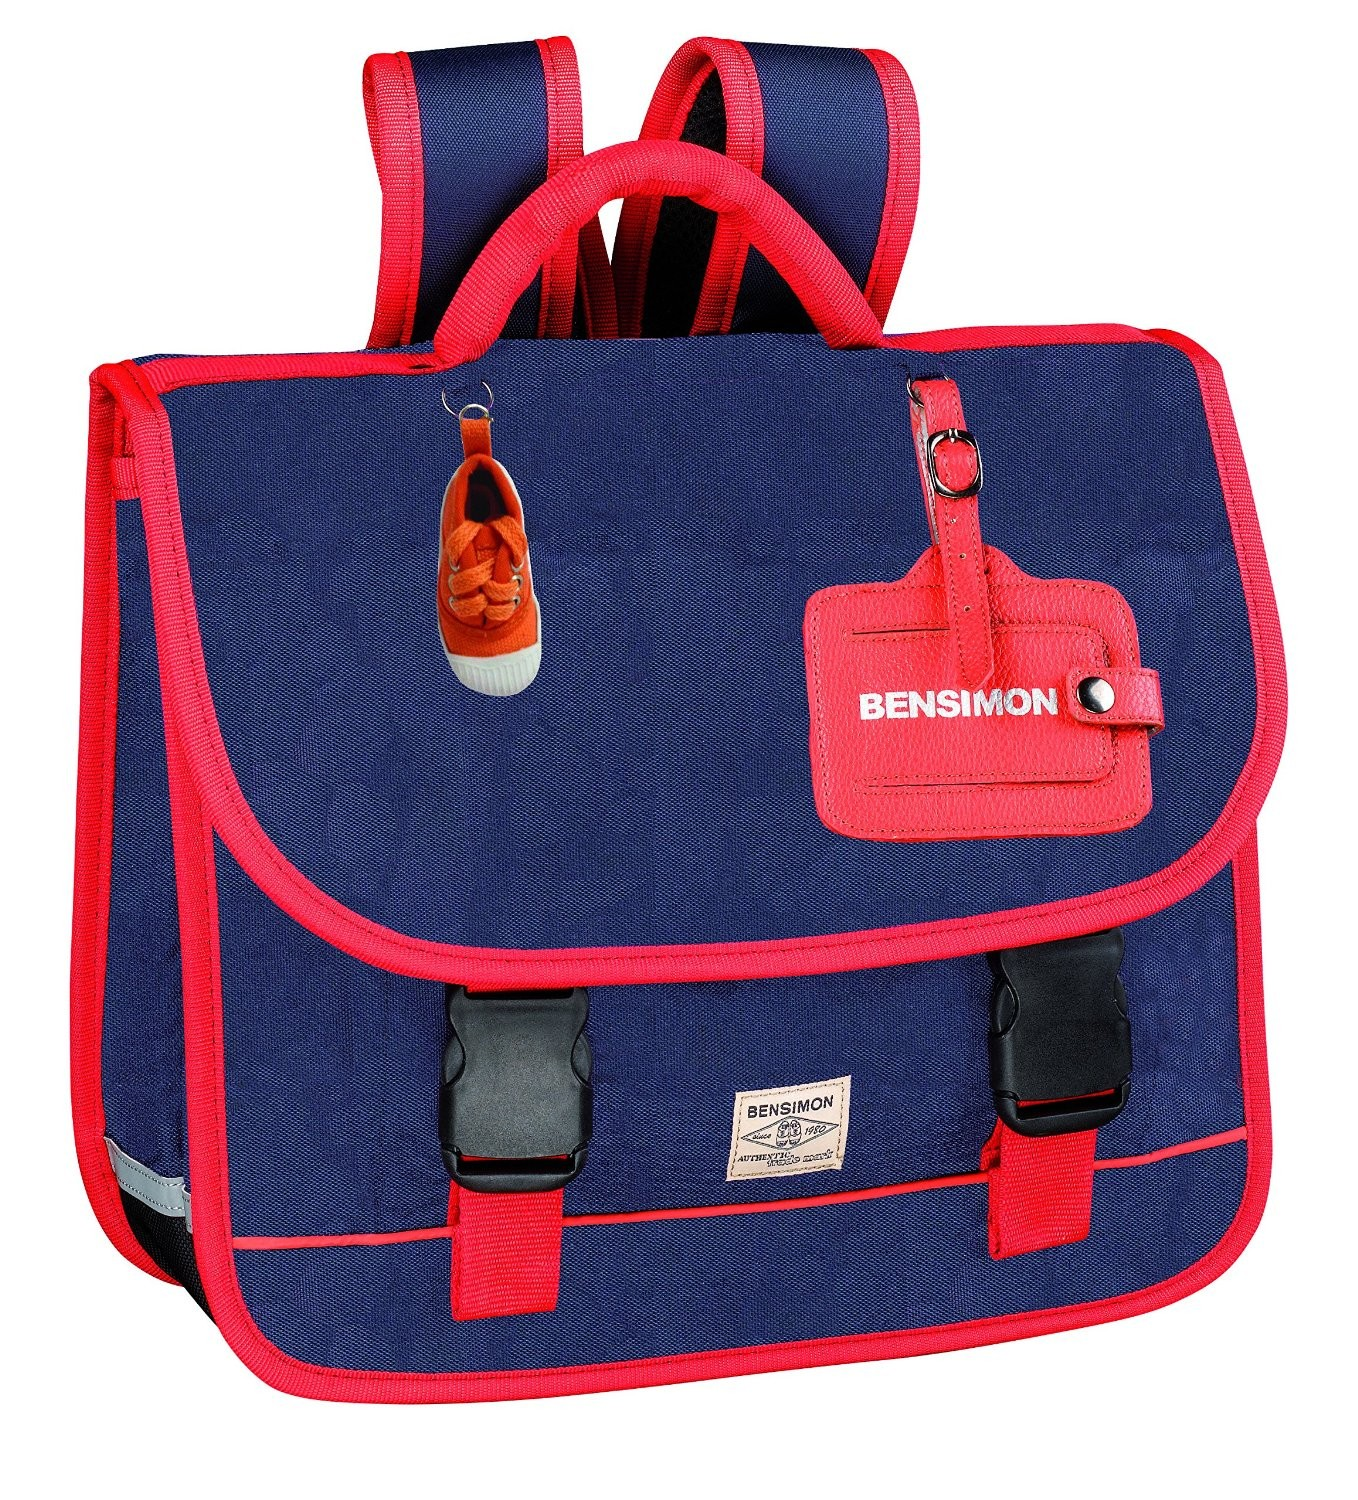 bensimon color cartable bleu 2 compartiments 36 cm